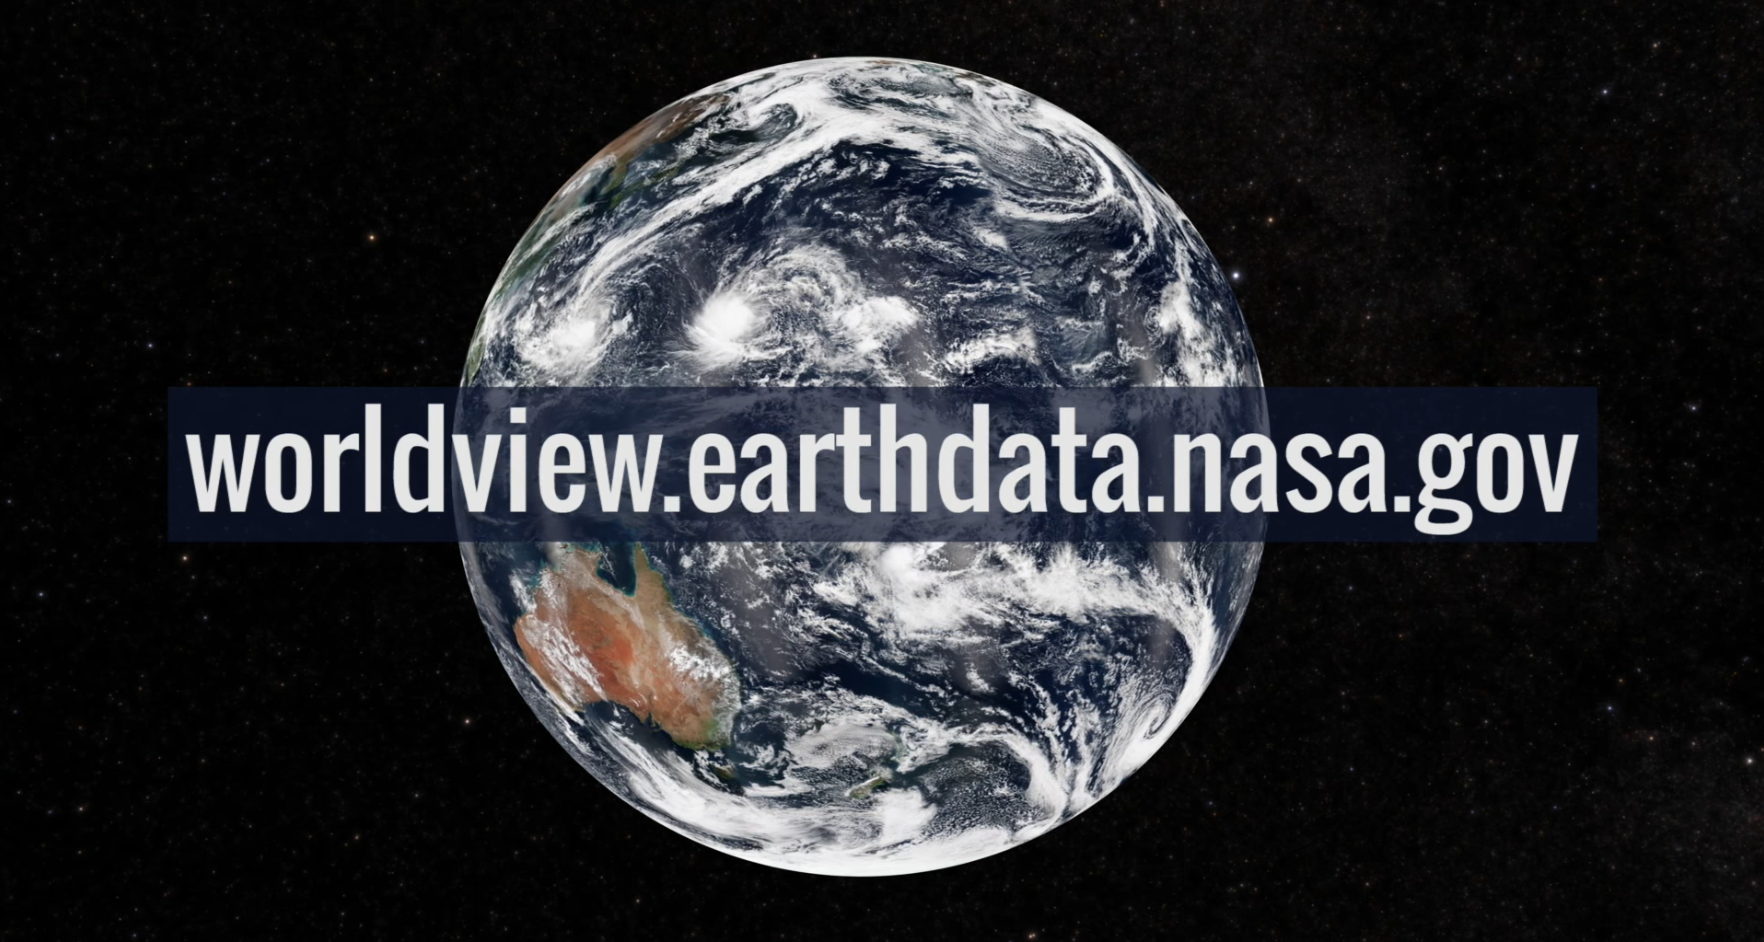 Earth with worldview url